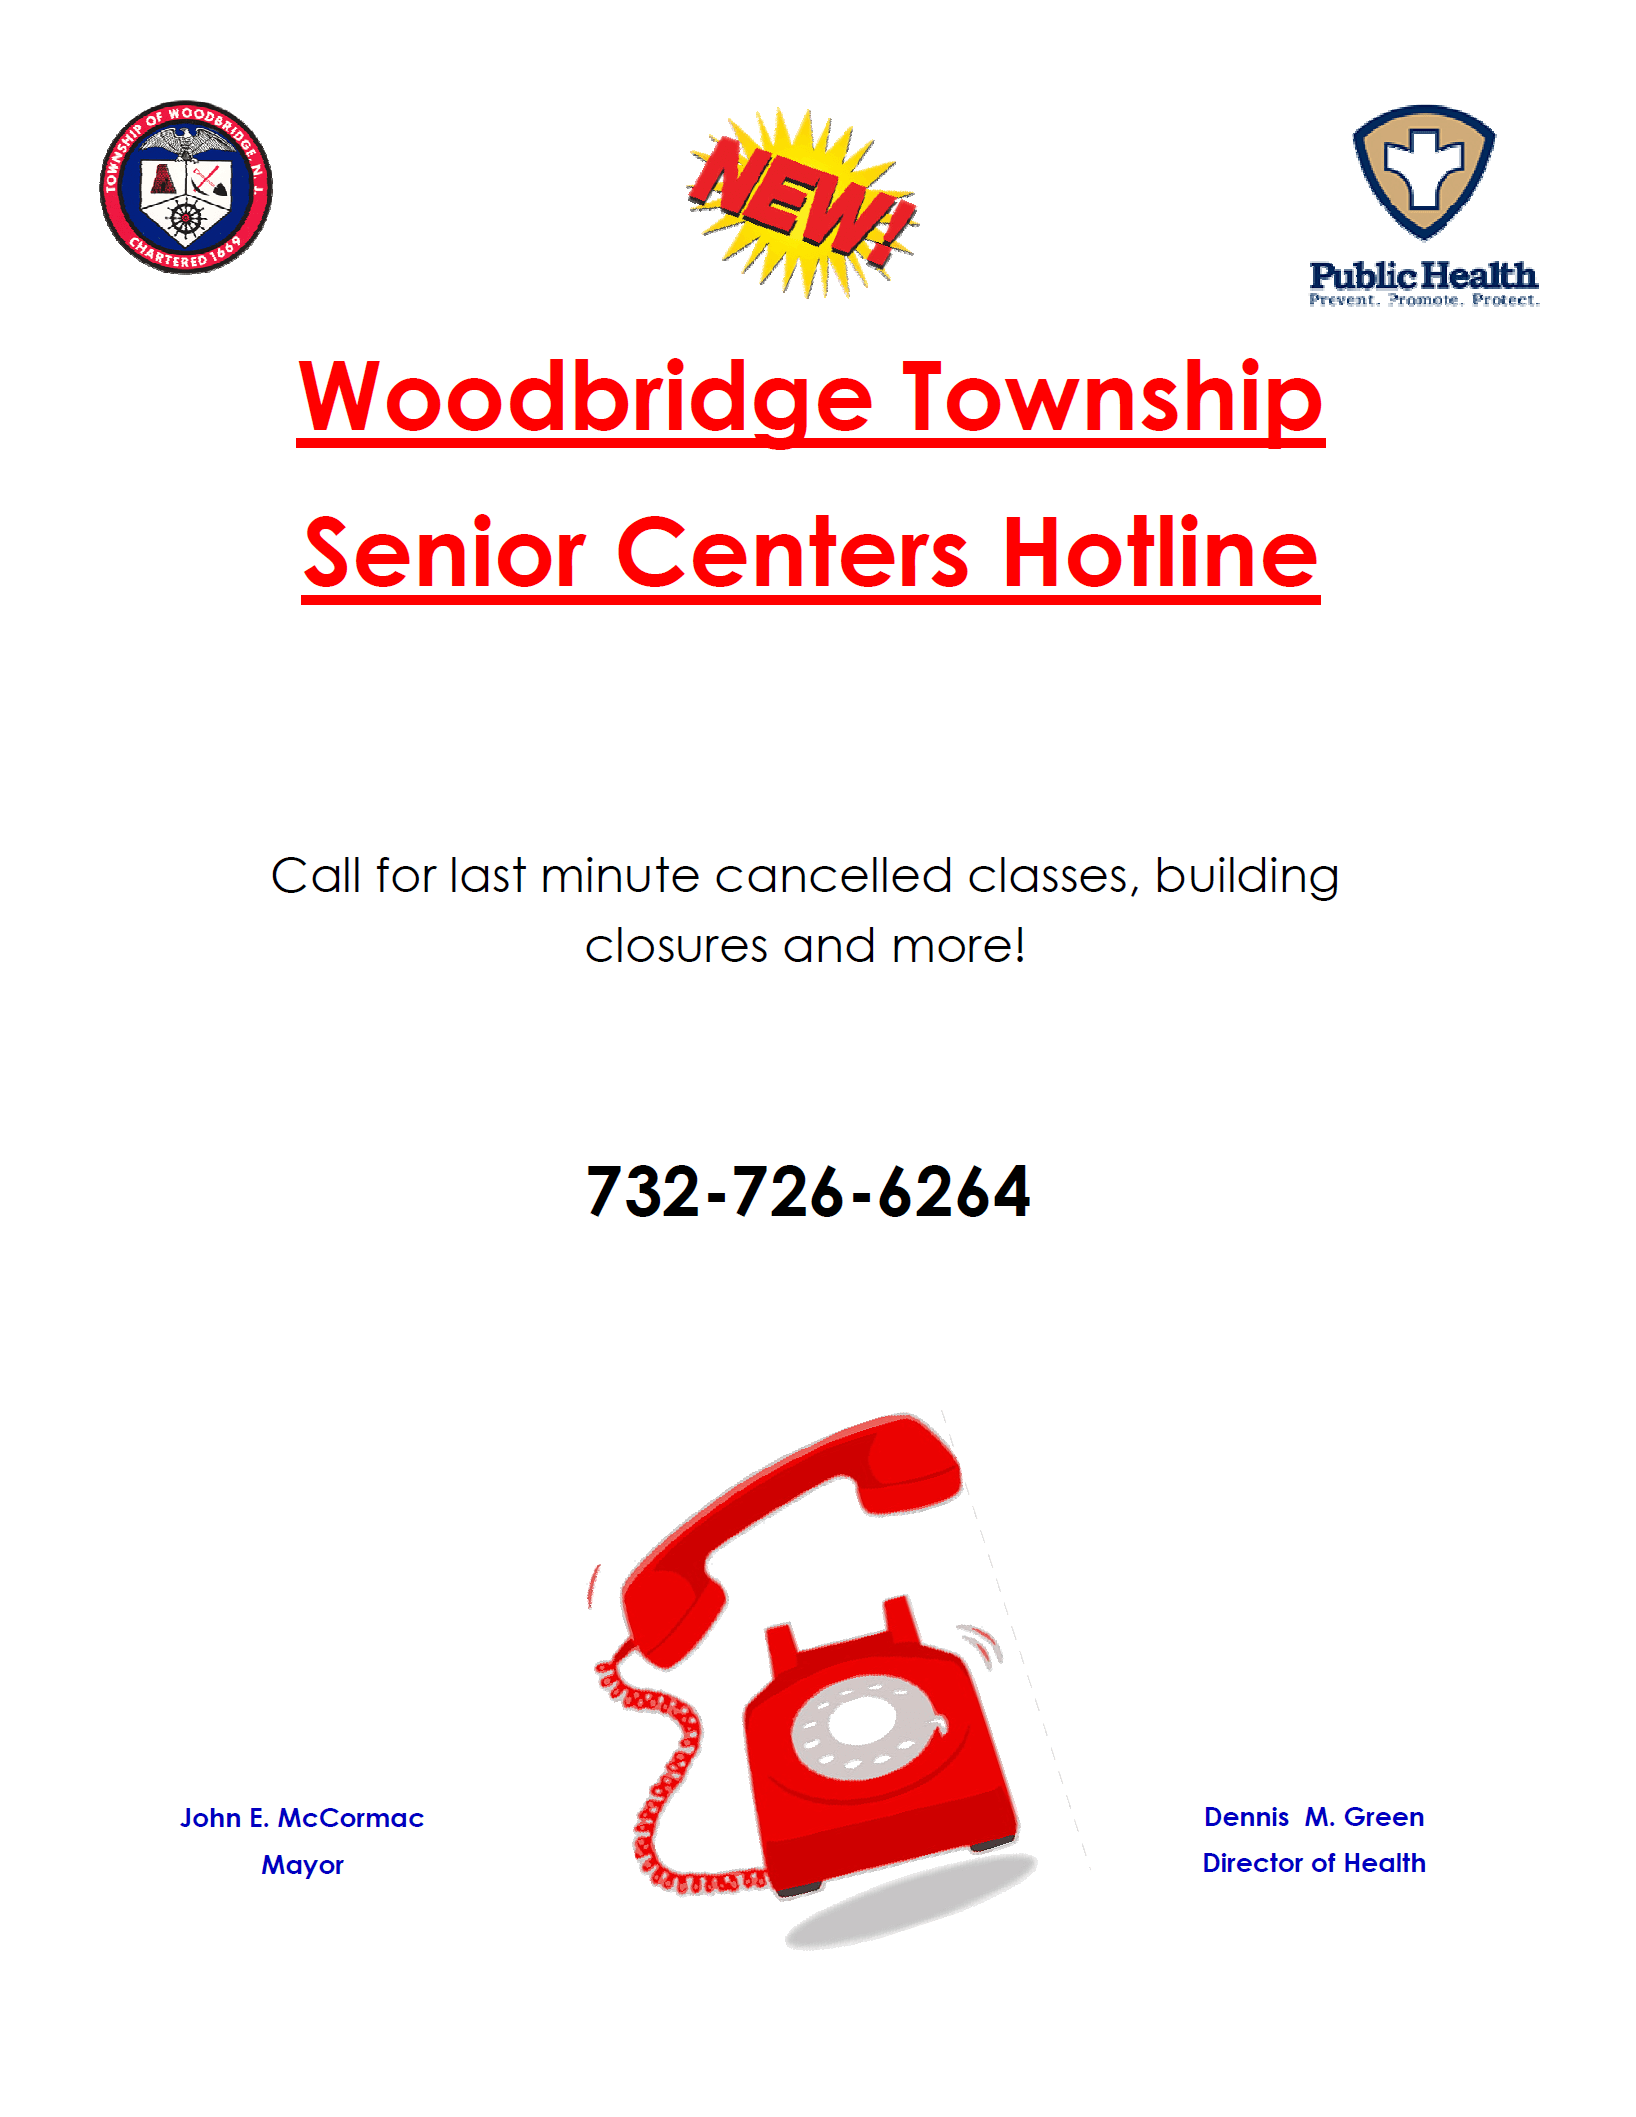 Senior Center Hotline